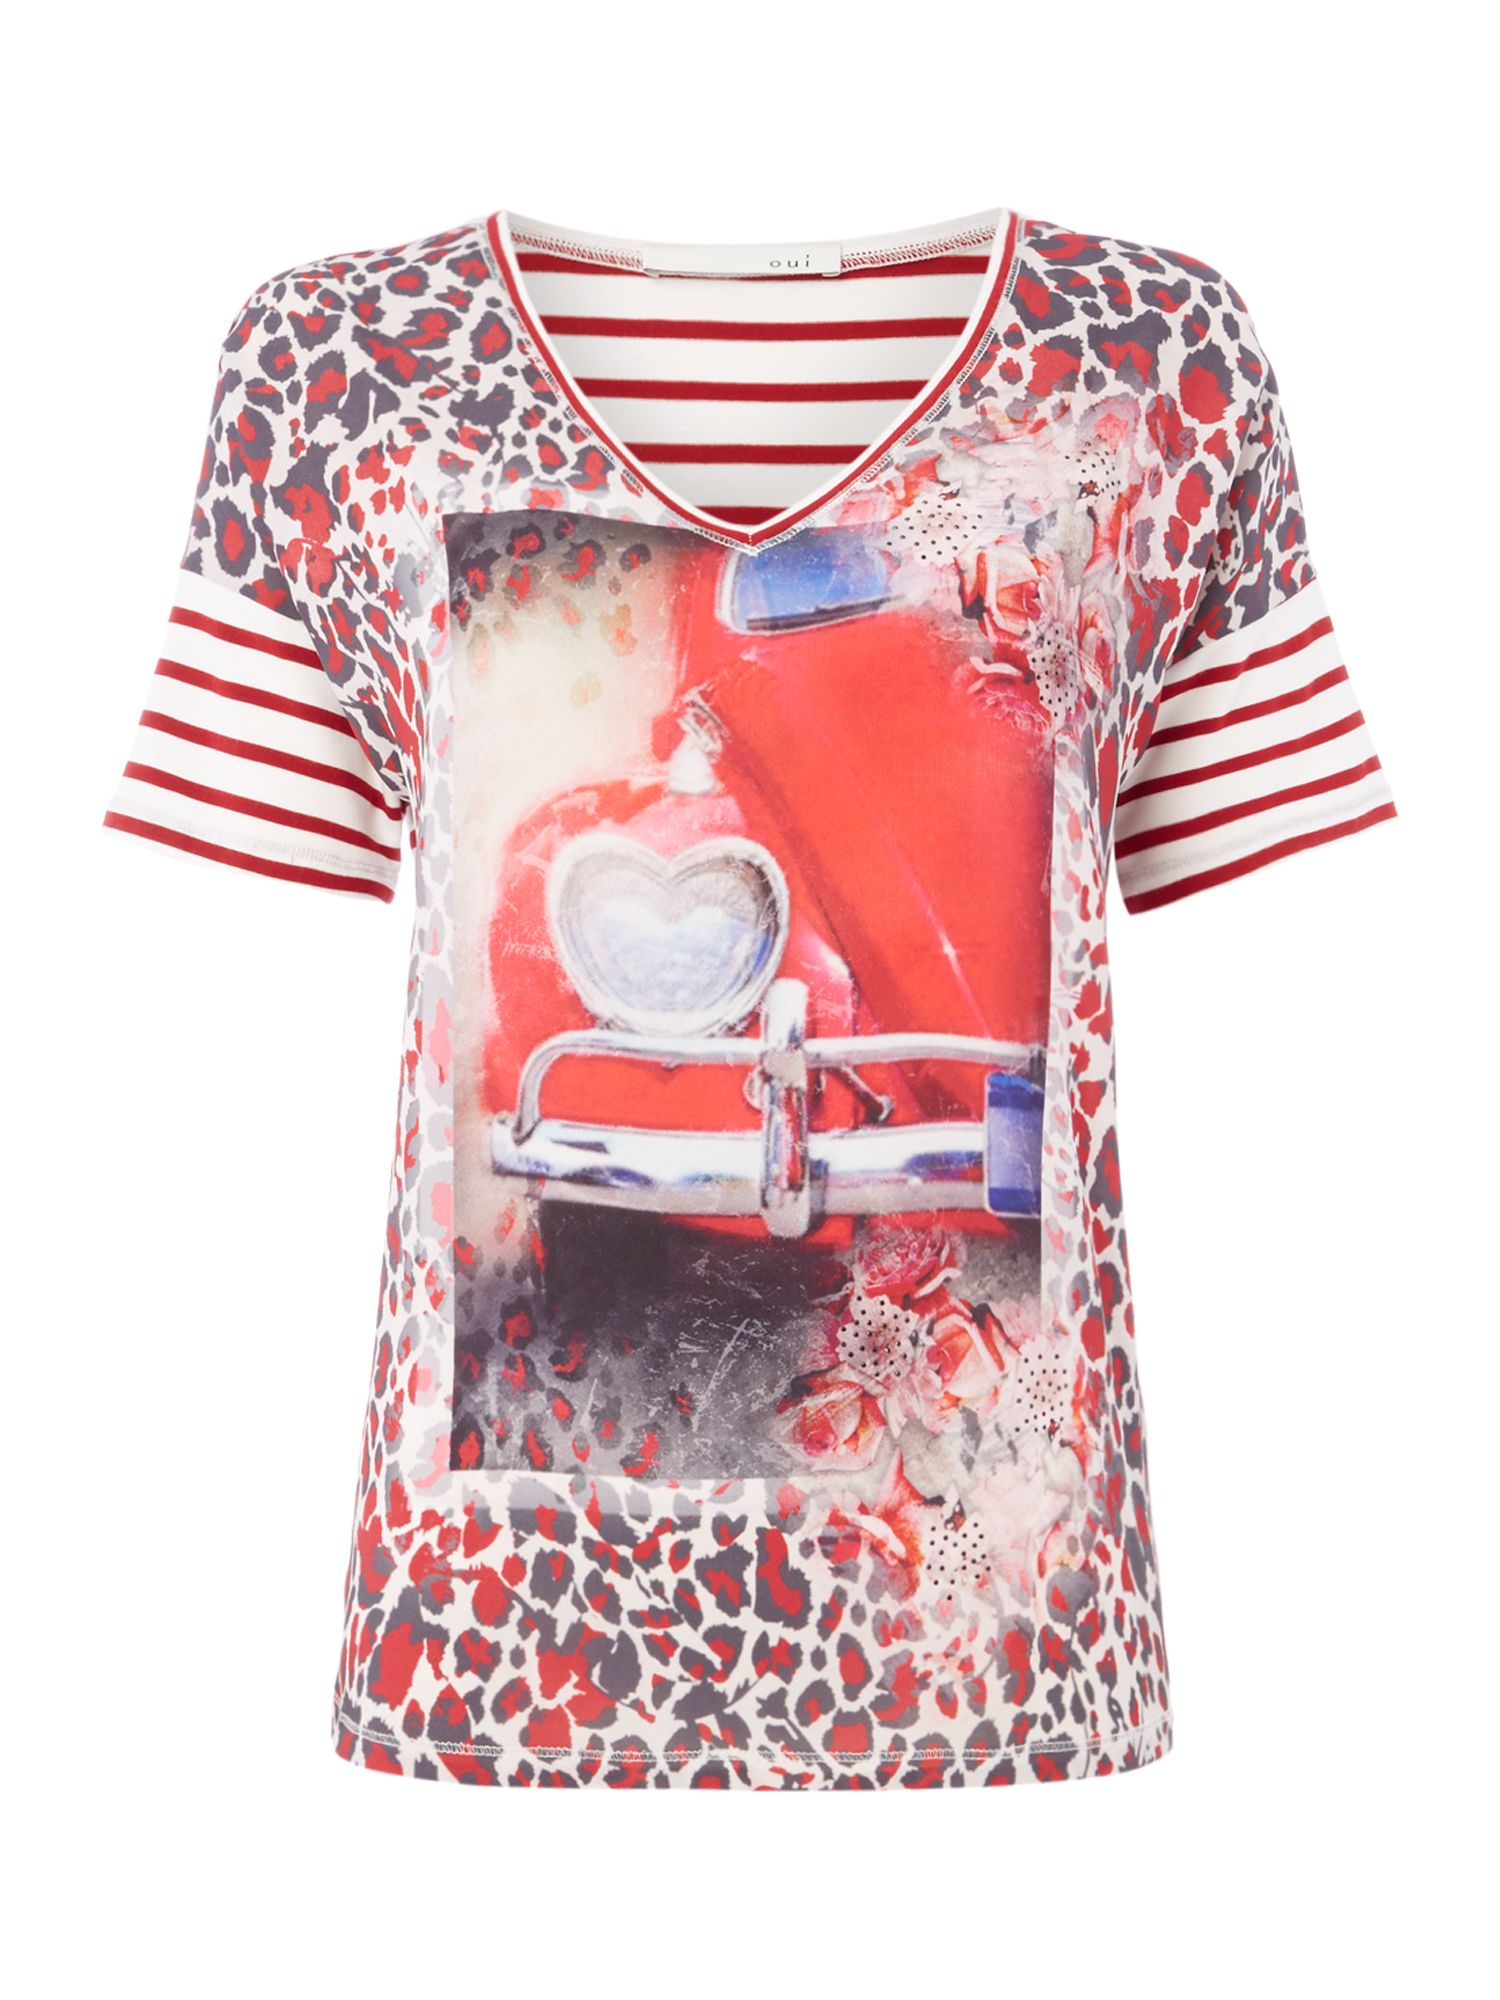 Oui Red bus print tee, Red